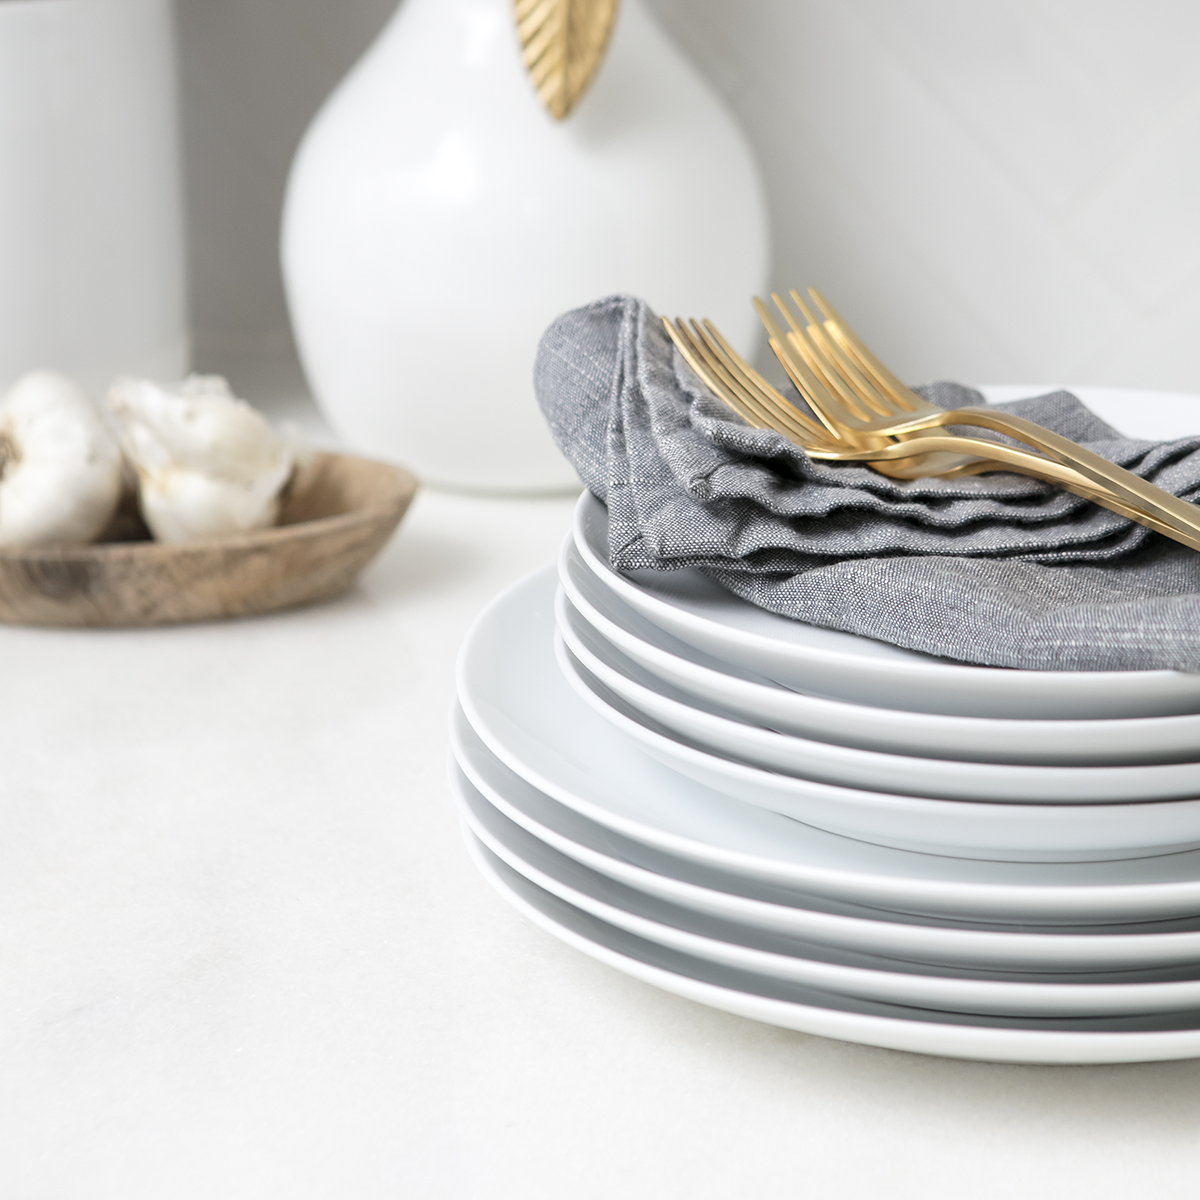 Clean stack of white dishes.JPG